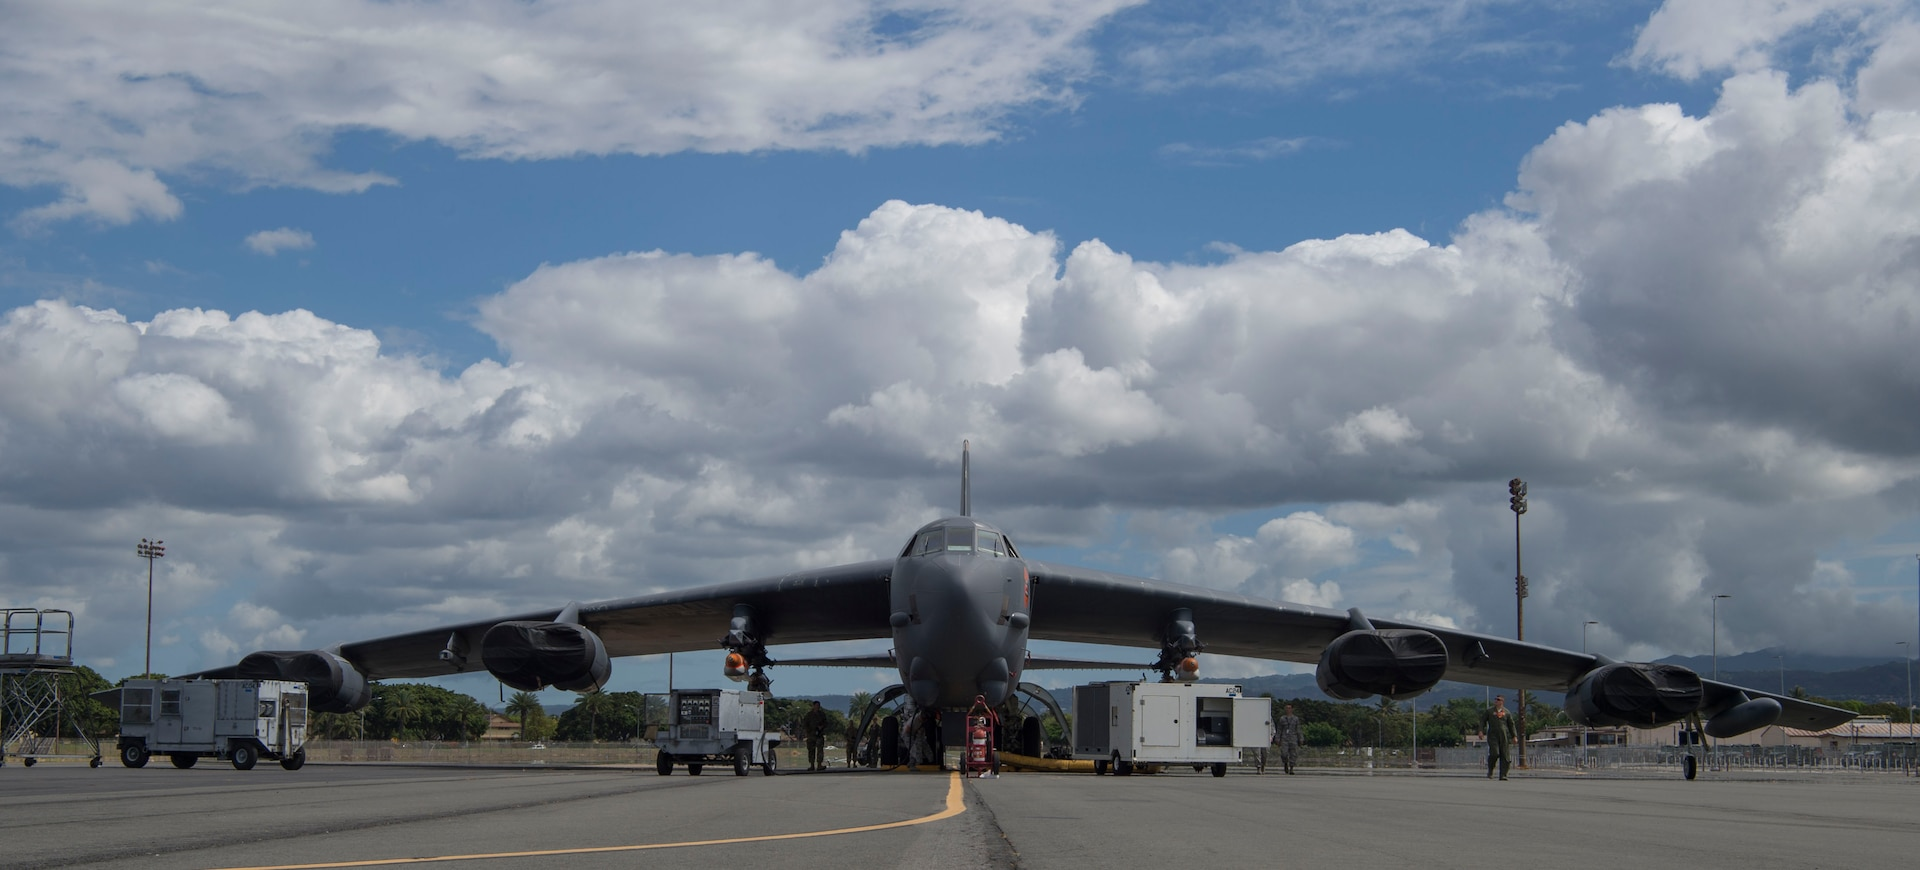 49th Test and Evaluation Squadron Demonstrates Capabilities from the Fulcrum of the Pacific